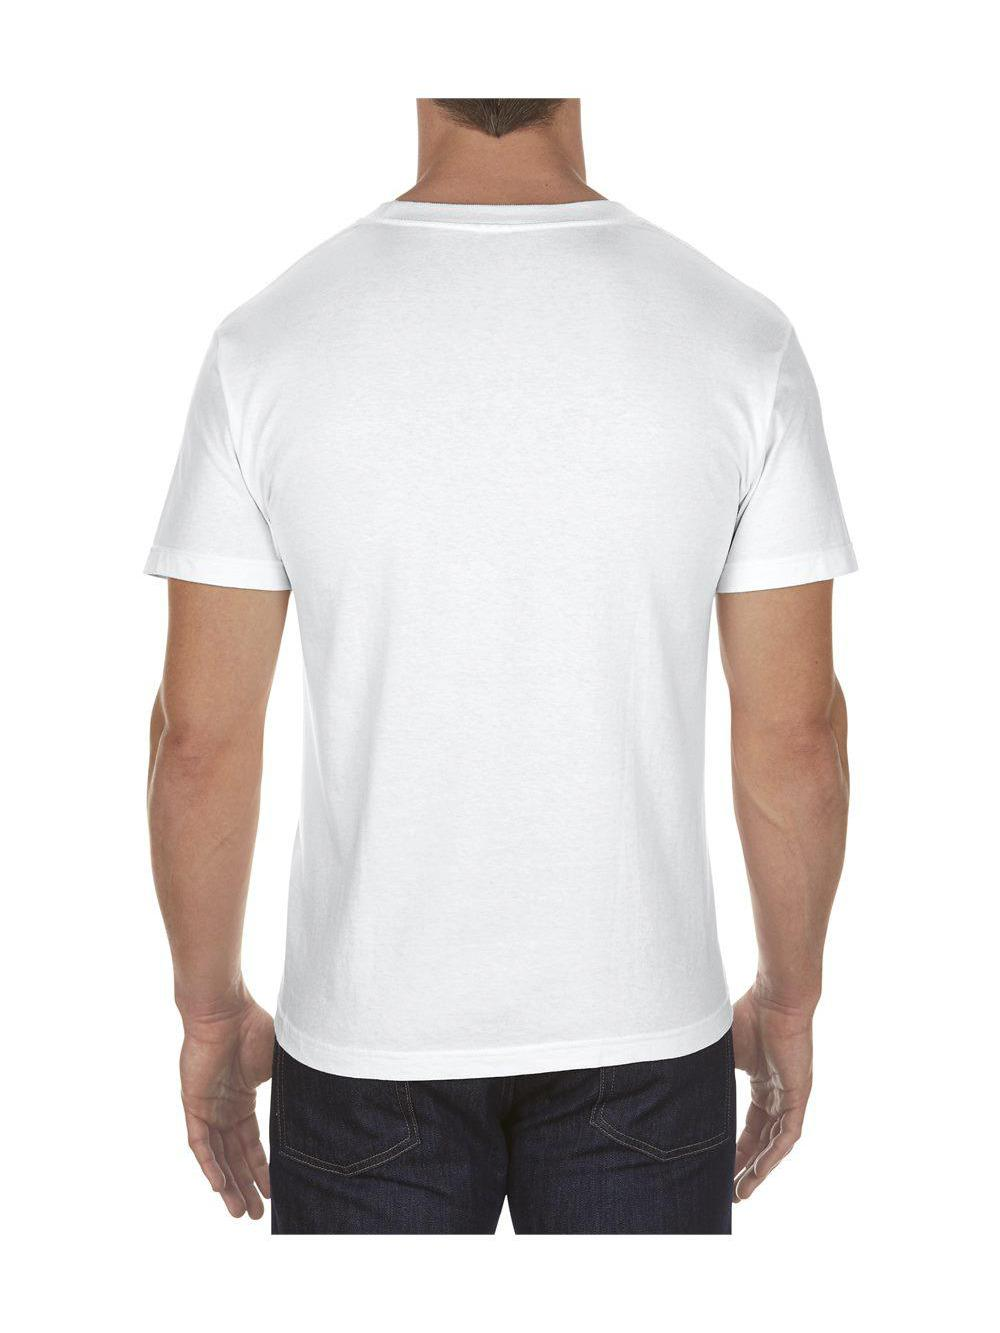 ALSTYLE-Classic-T-Shirt-1301 thumbnail 87